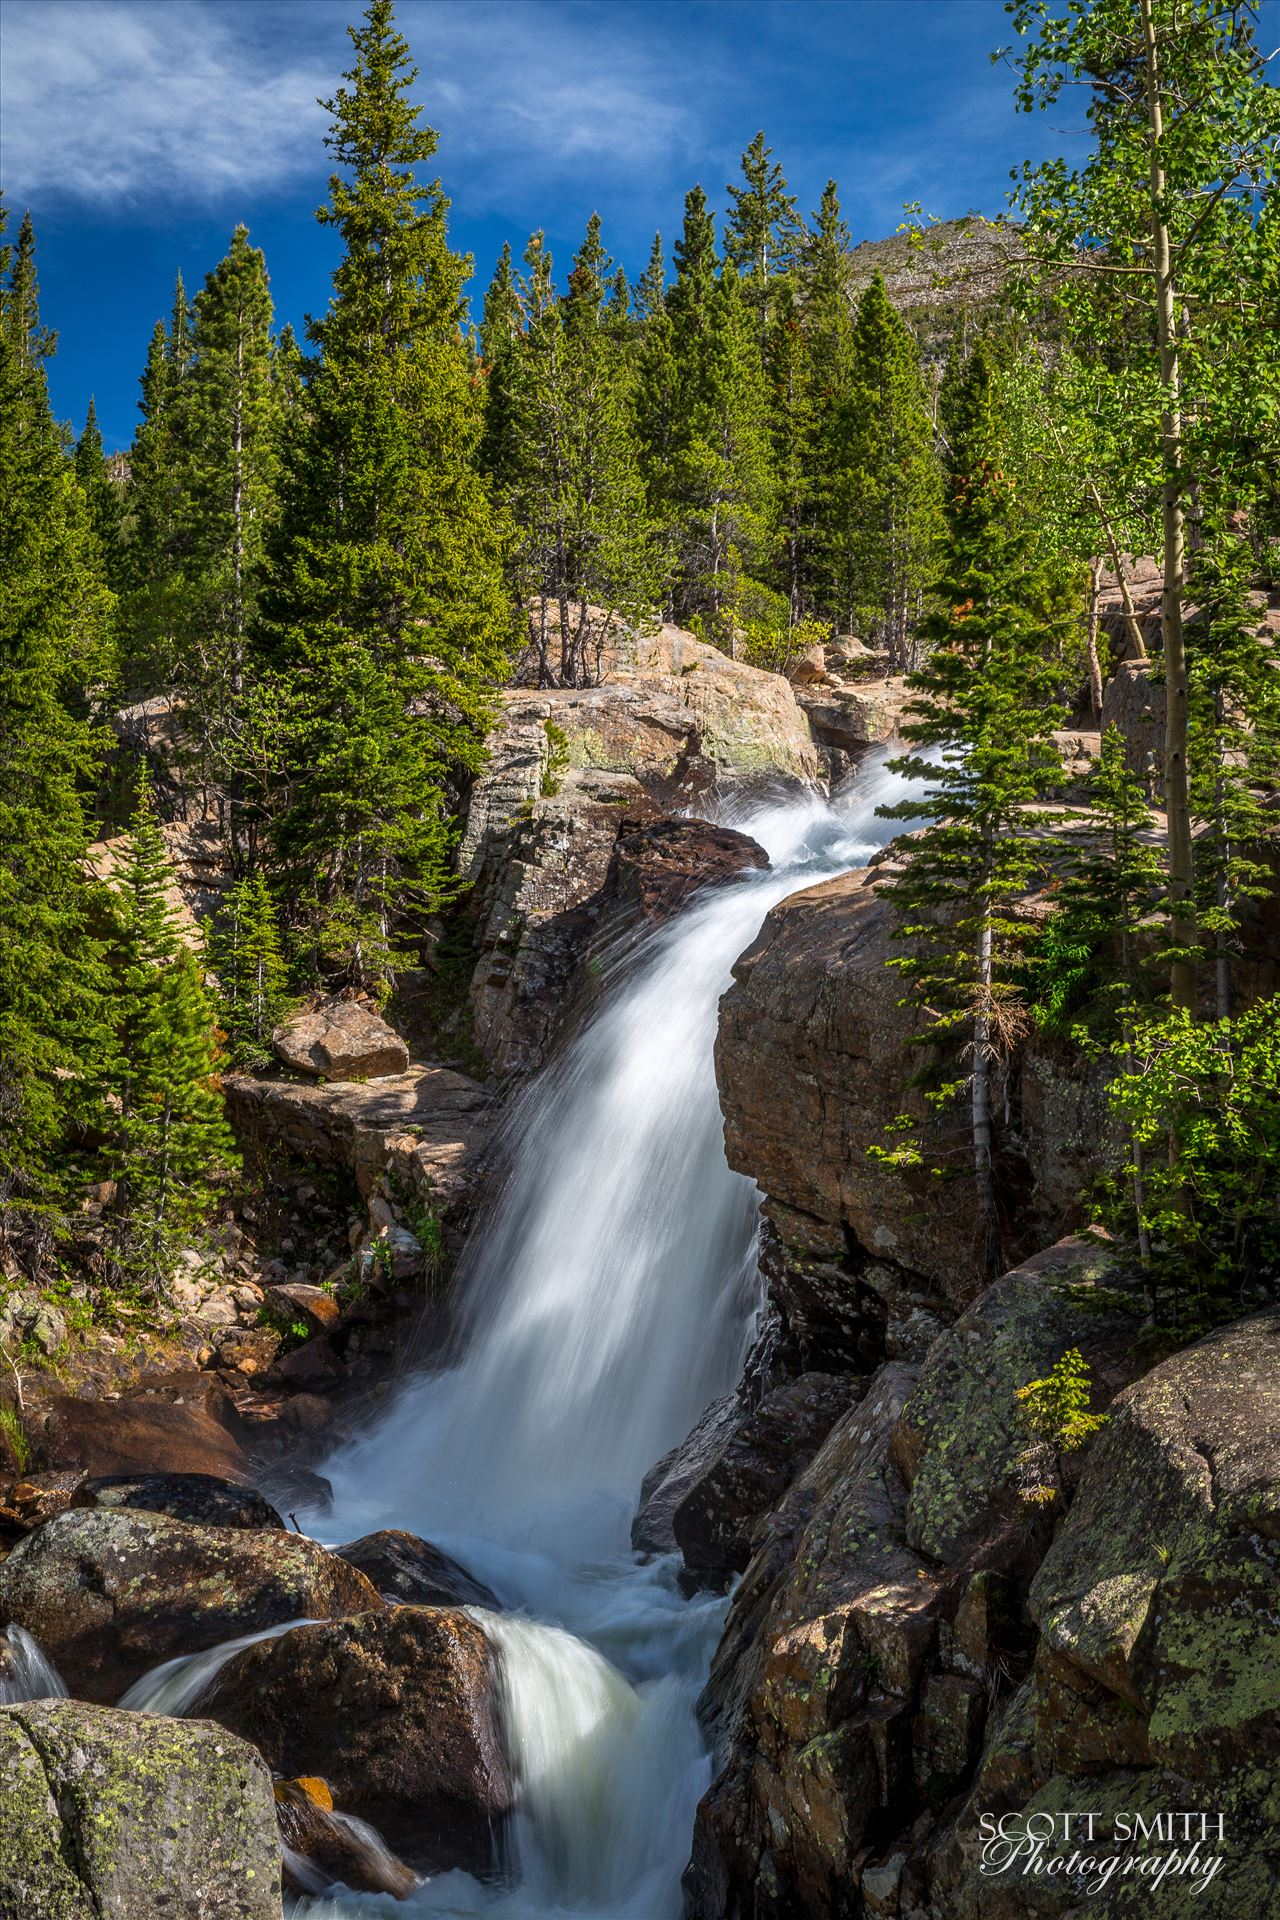 Alberta Falls No 2 - From the Rocky Mountain National Park, near Estes Park, Colorado. by D Scott Smith